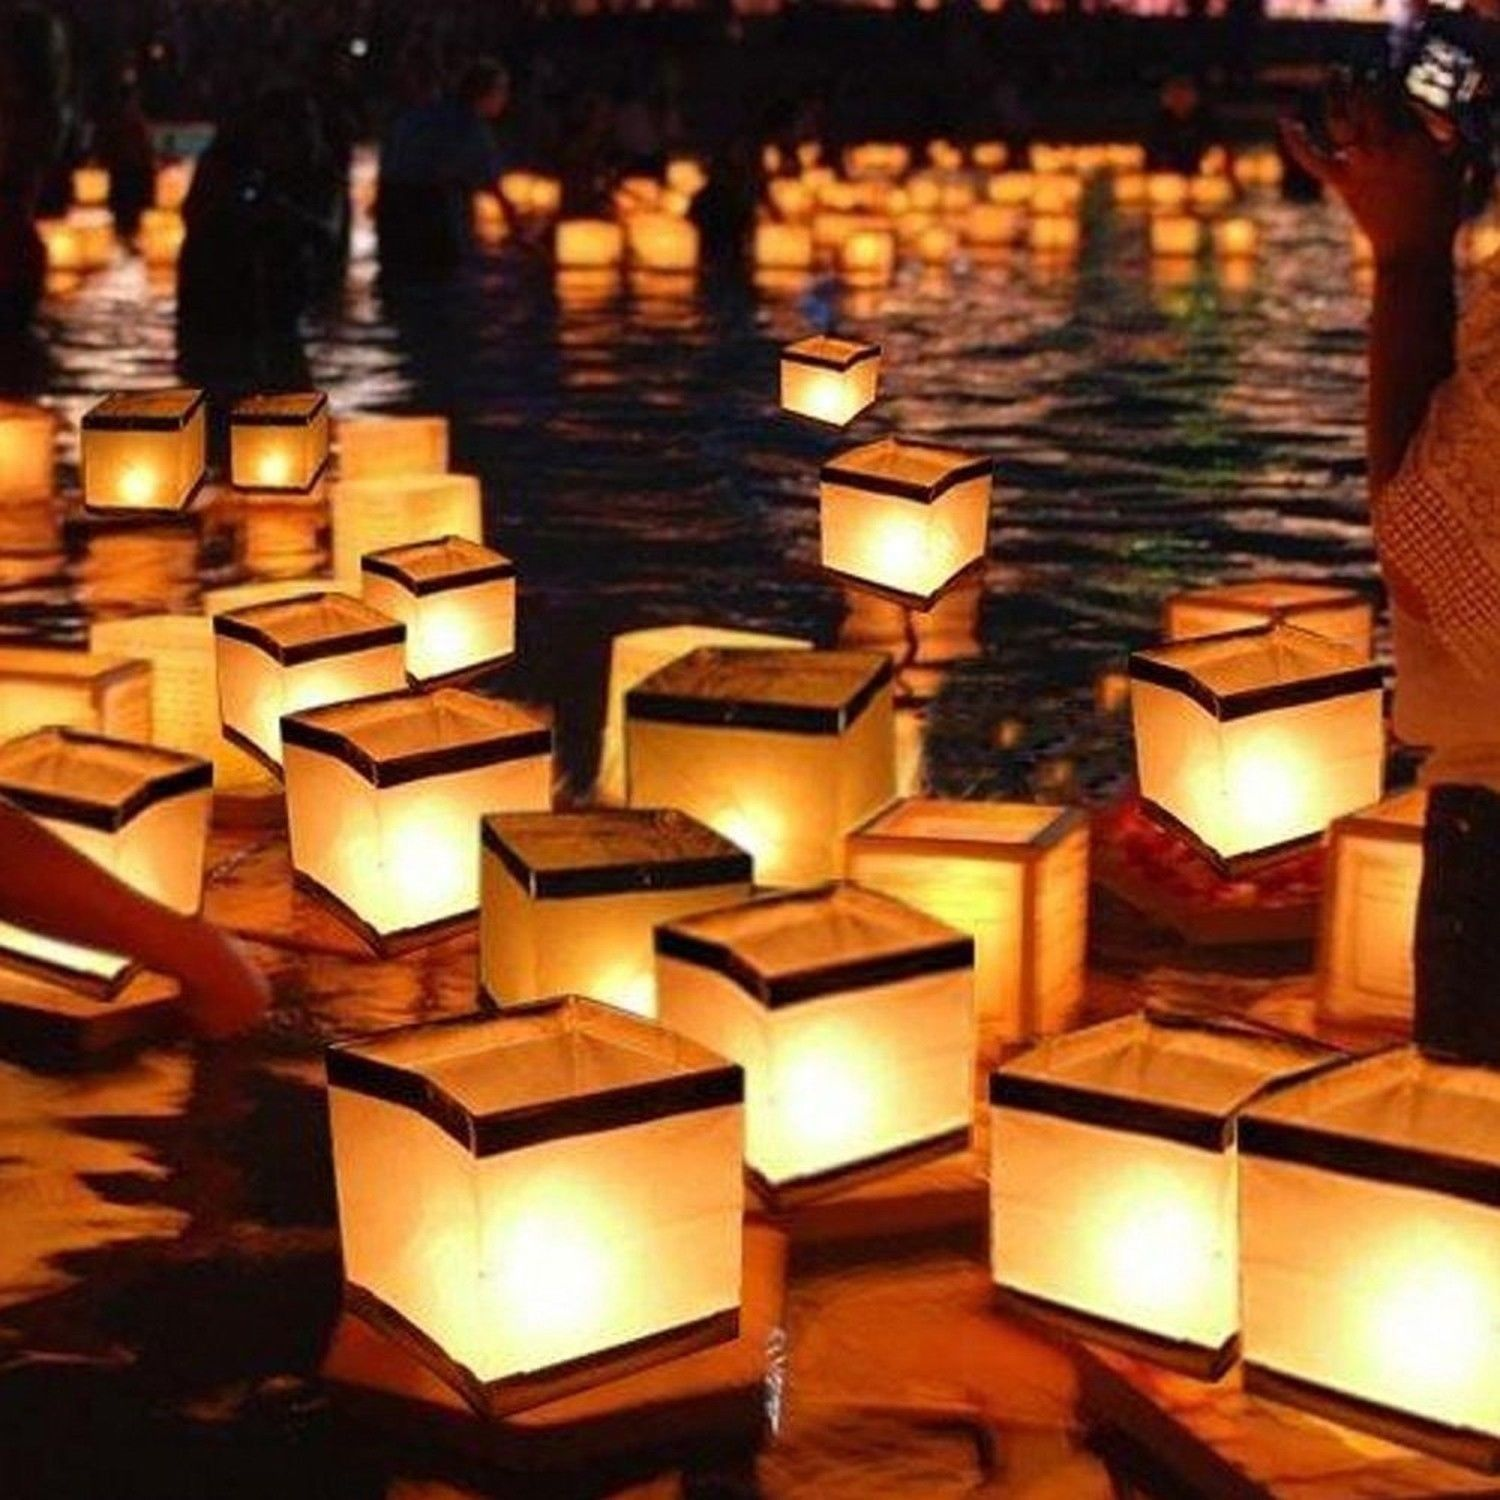 Homecube Outdoor Water Floating Candle Lanterns Biodegradable White Chinese P Floating Water Lanterns Floating Paper Lanterns Floating Lanterns